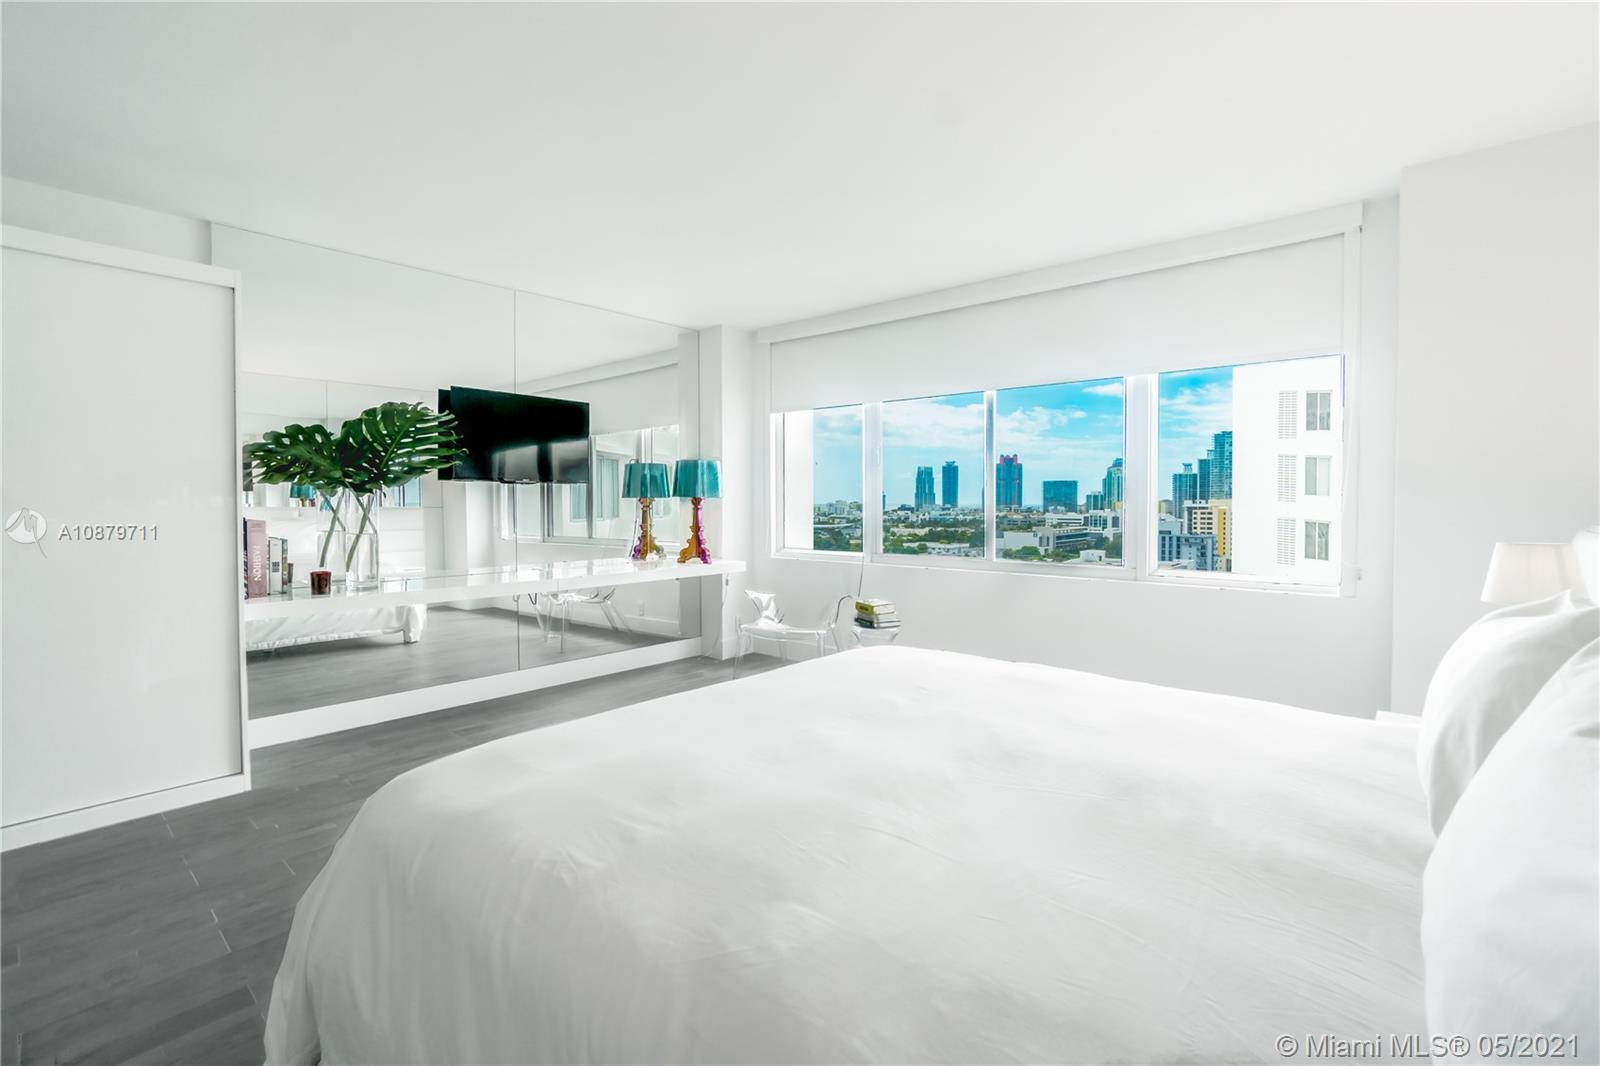 Sobe lifestyle! A stunning and remodeled spacious studio on the 14th floor with beautiful views of South Pointe/South Beach. New kitchen and luxurious bathroom in one of the most trendy buildings. Not part of the hotel program; offering a wide range of rental and personal use possibilities. Great value! Fully furnished and redesigned to maximize space and set a new trend in a building with all units alike. Newer A/C, water & electric included w/association. Be part of the exclusive area of South Beach enjoying 5-star dining, 24 hr room service, Sunset Lounge, 2 swimming pools, fitness center, spa, and 24 hr valet parking included and Exclusive Access to The Delano Beach Club. Easy to show!